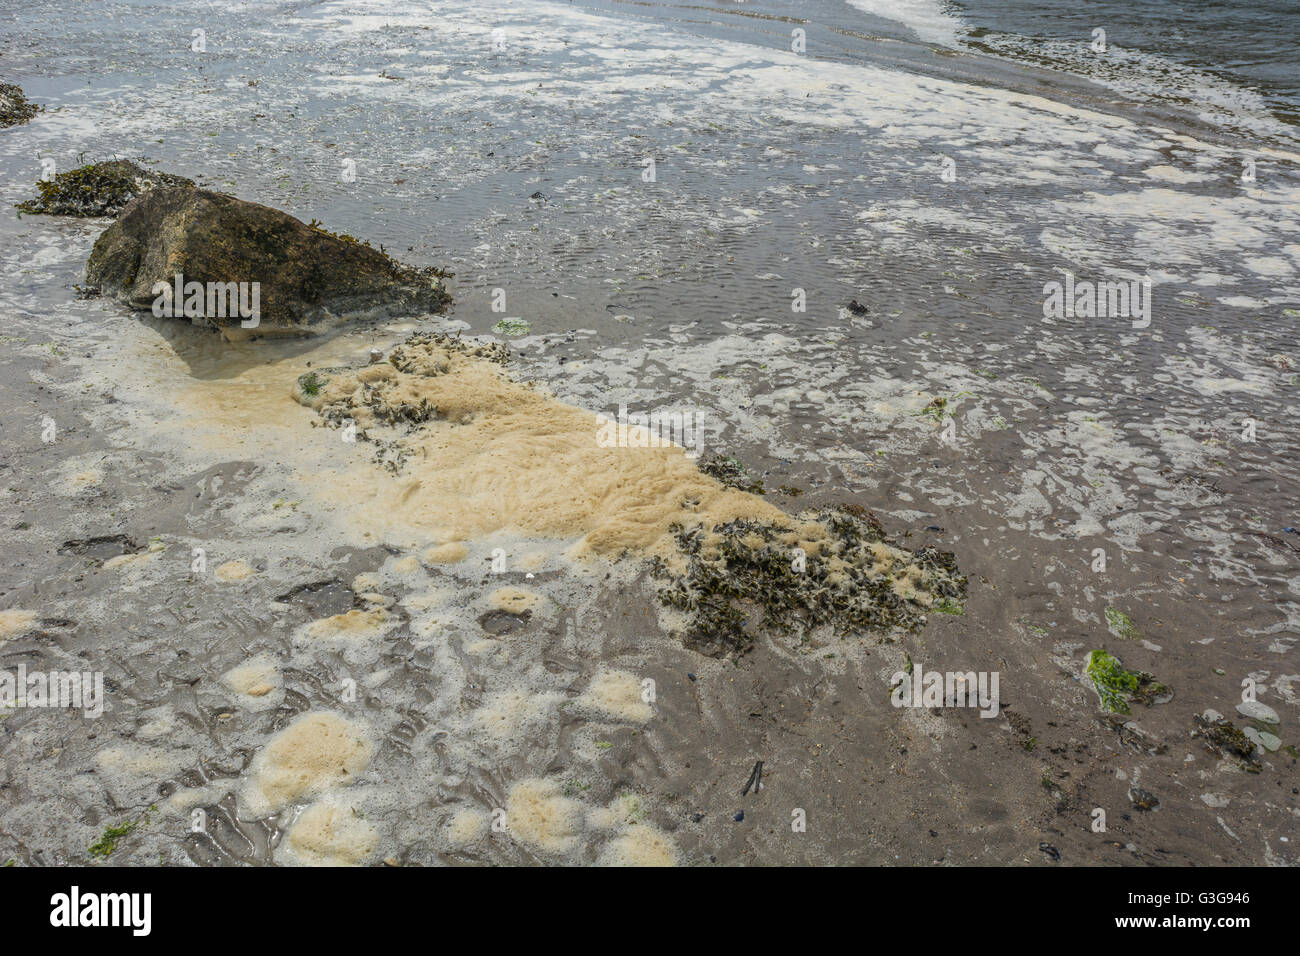 Polluted UK beach with dirty sea foam at the shore's edge - metaphor for environmental pollution, polluted water, - Stock Image